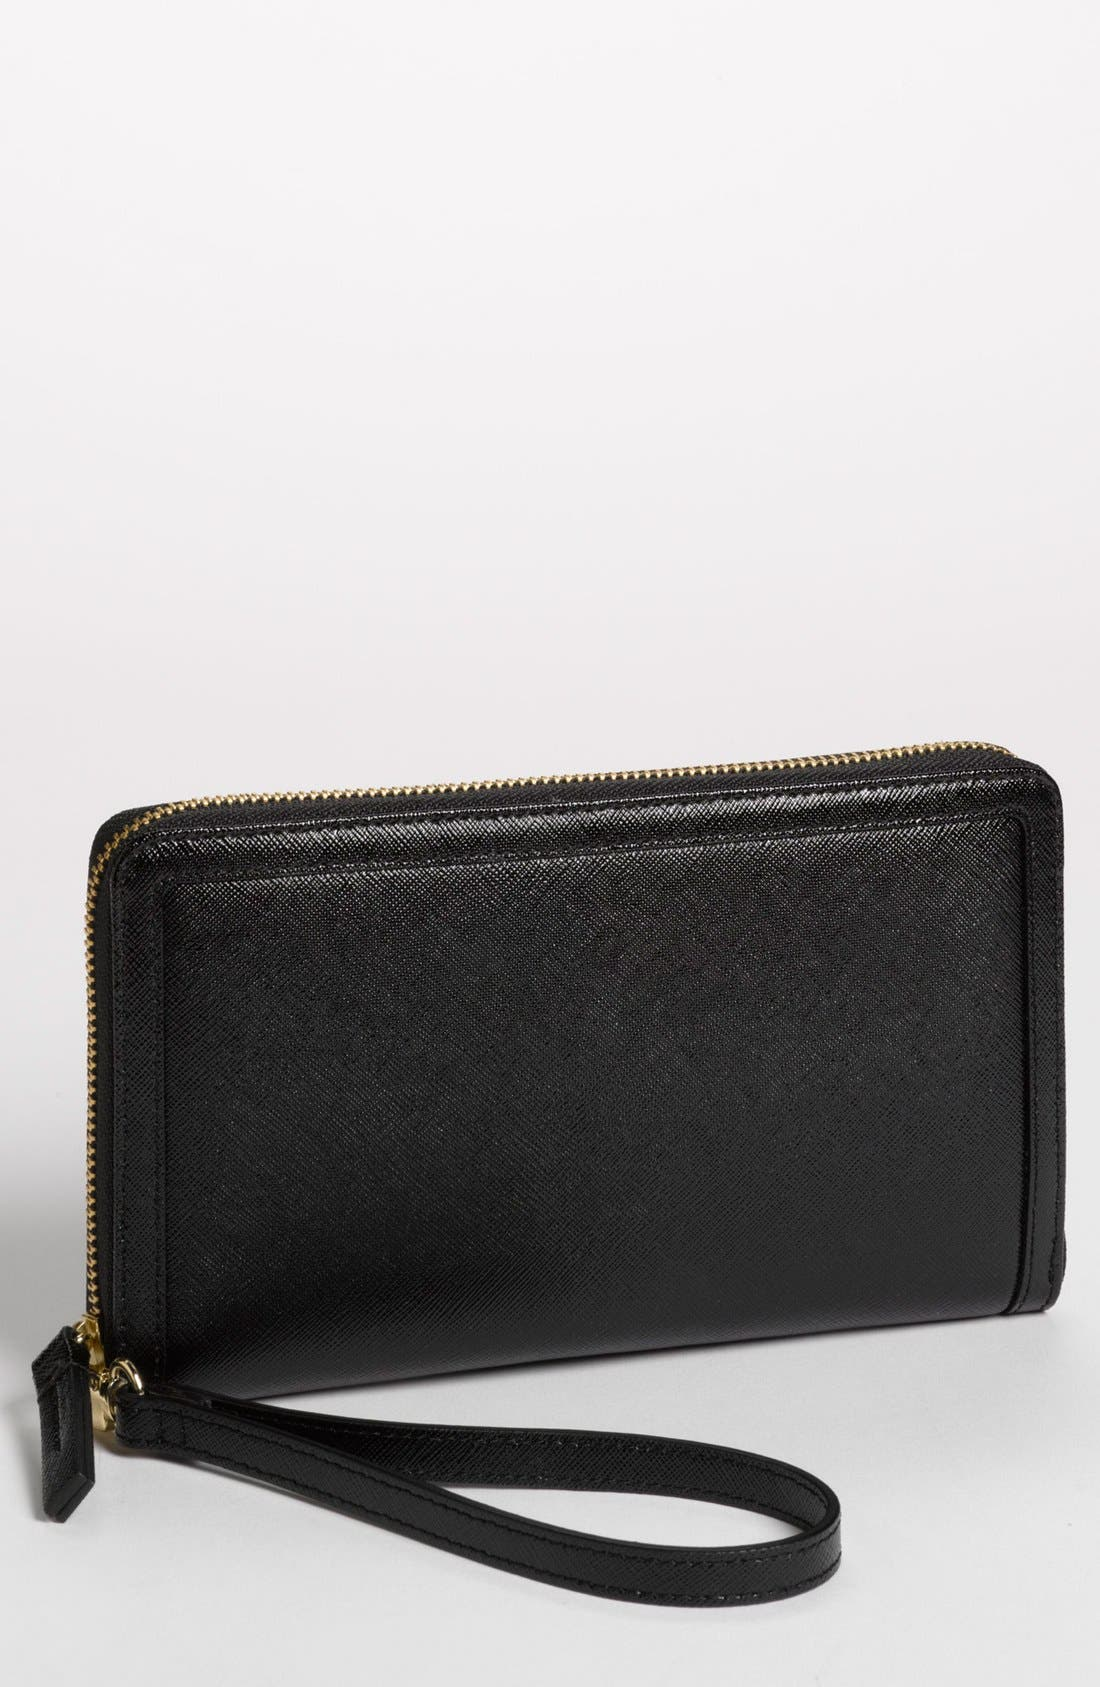 Zip Around Wallet,                         Main,                         color, Black